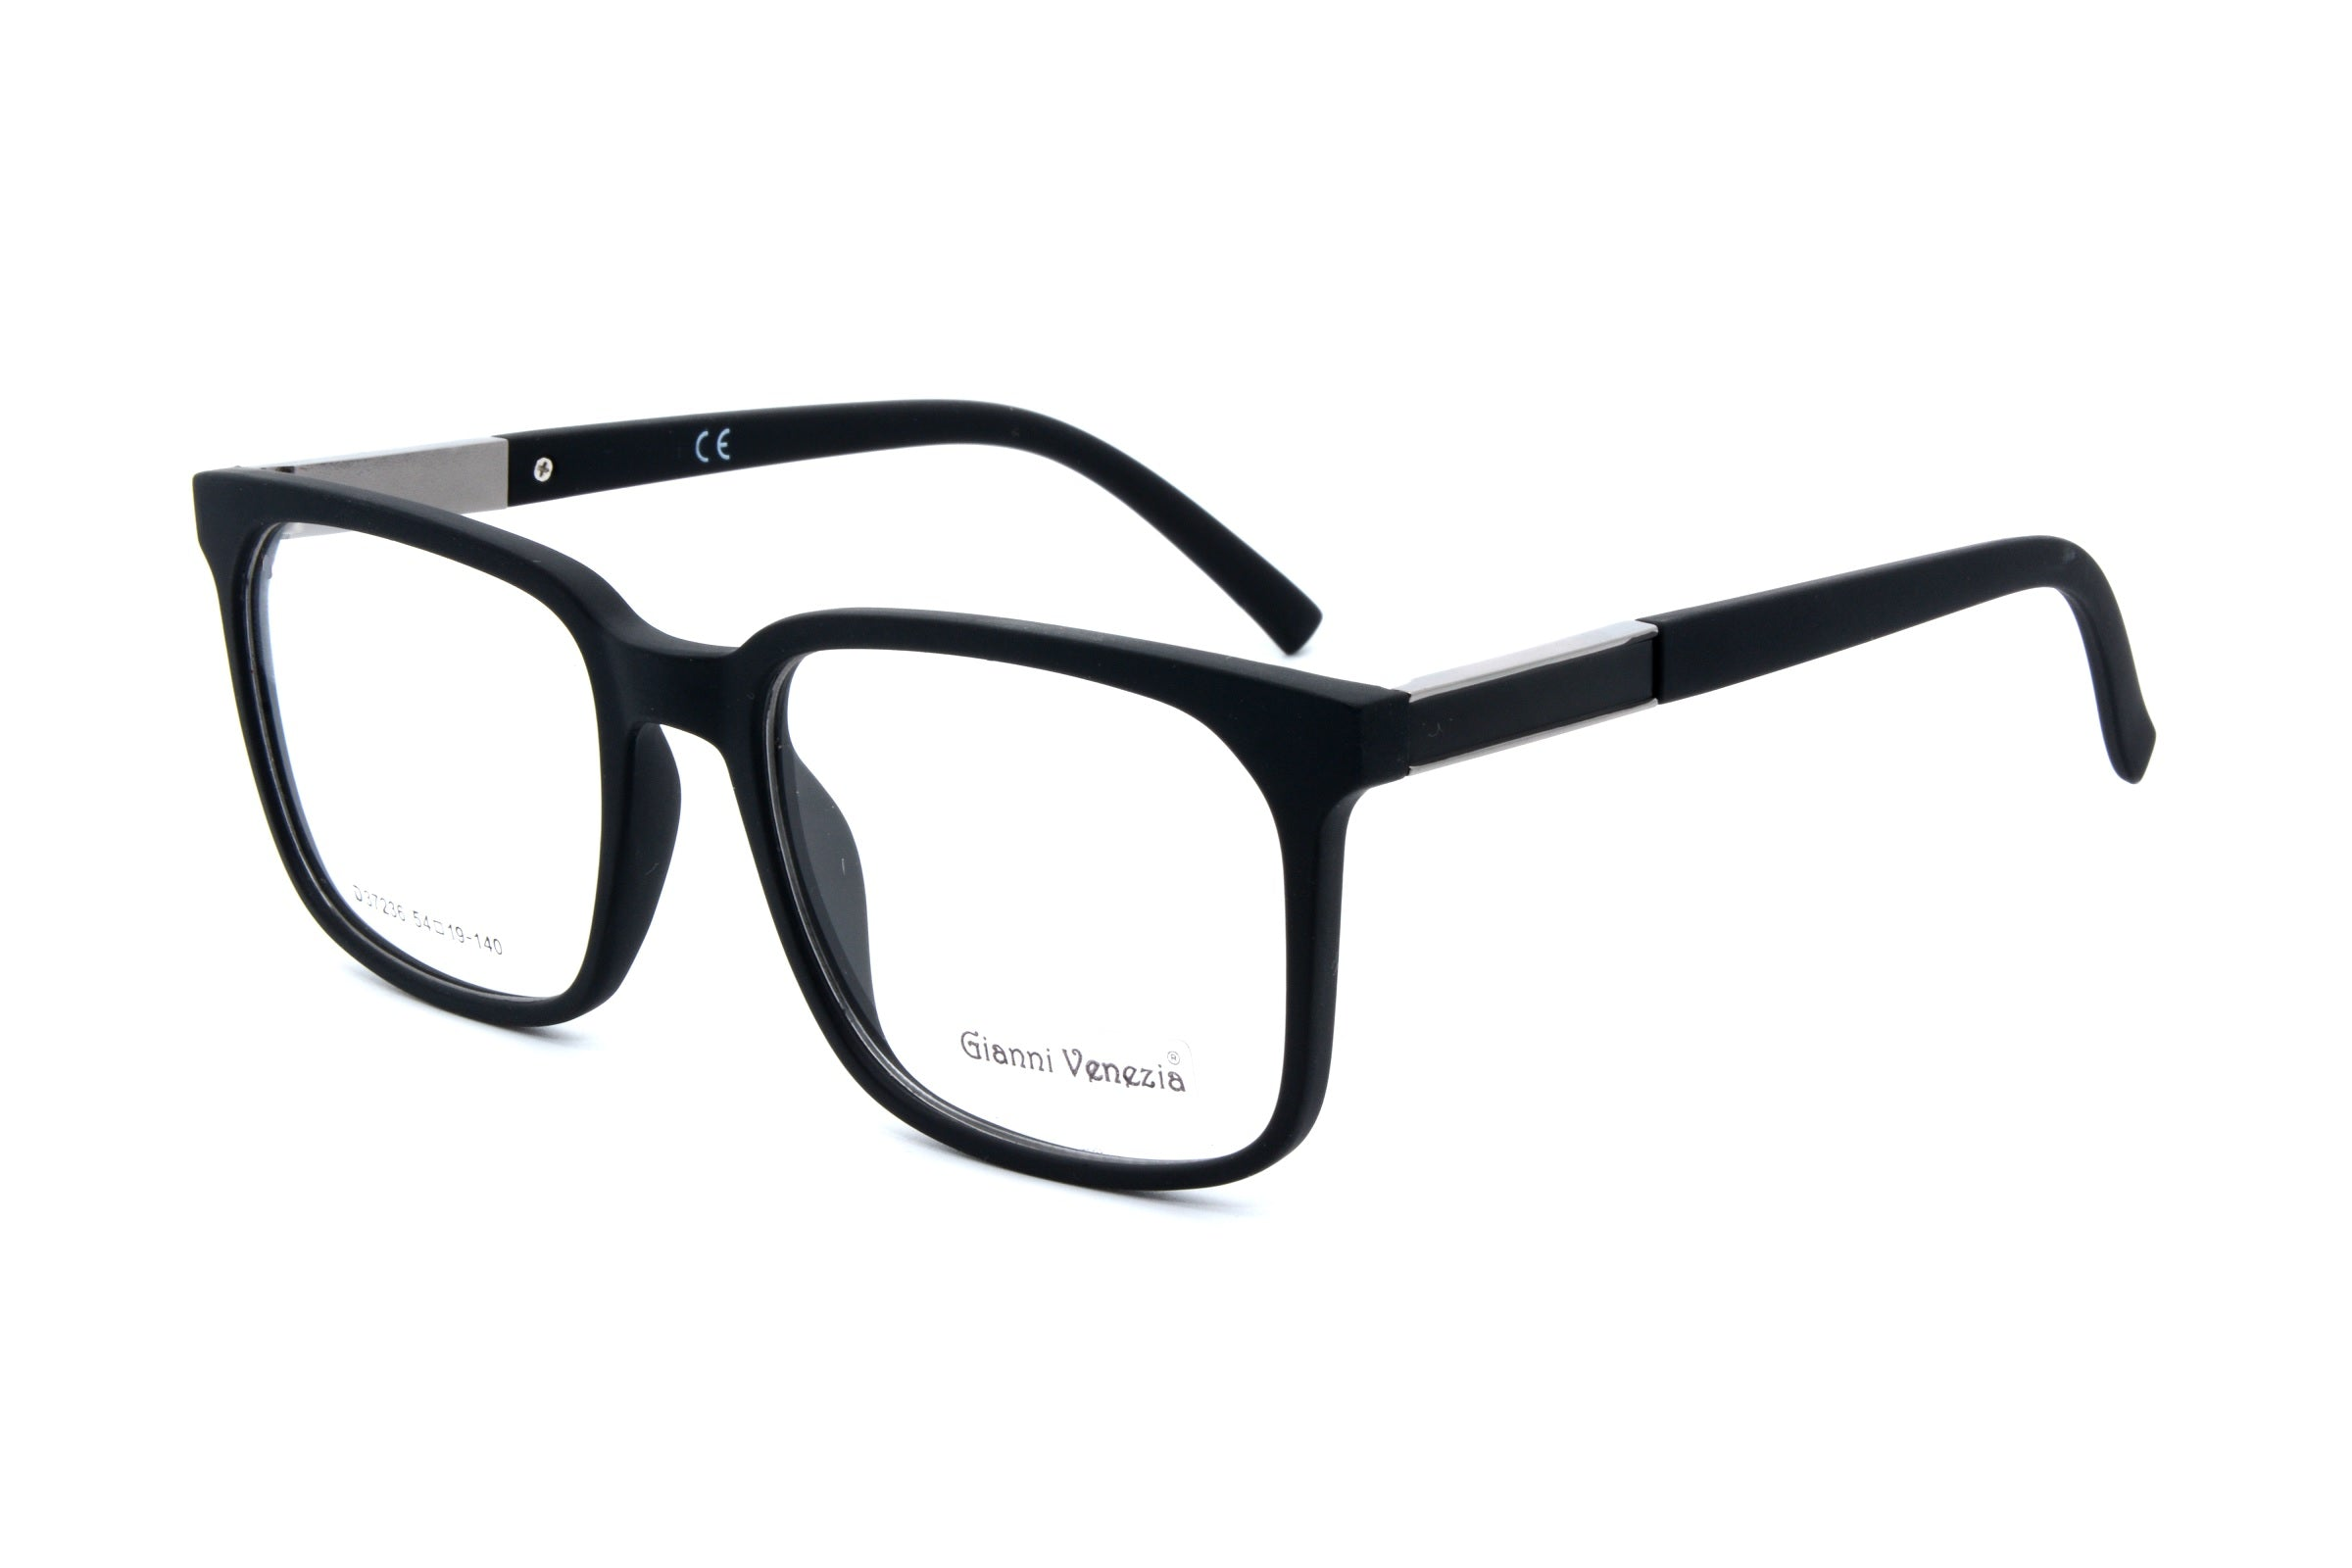 Gianni Venezia eyewear 37236, C1 - Optics Trading